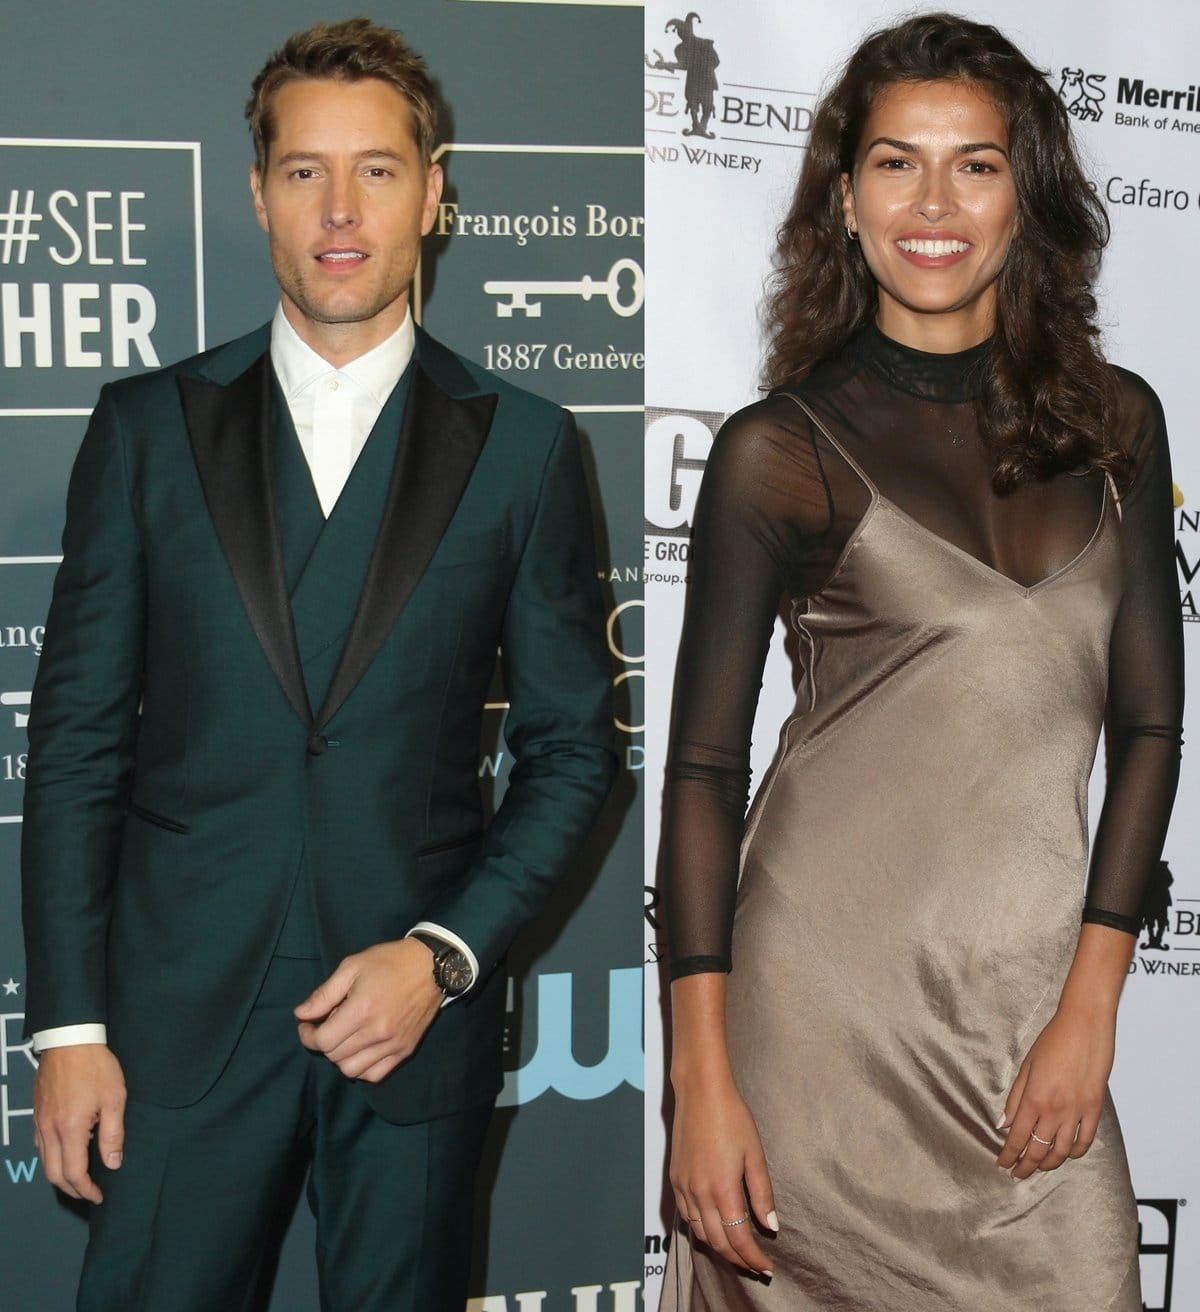 Justin Hartley and Sofia Pernas began dating in early 2020 and married in May 2021